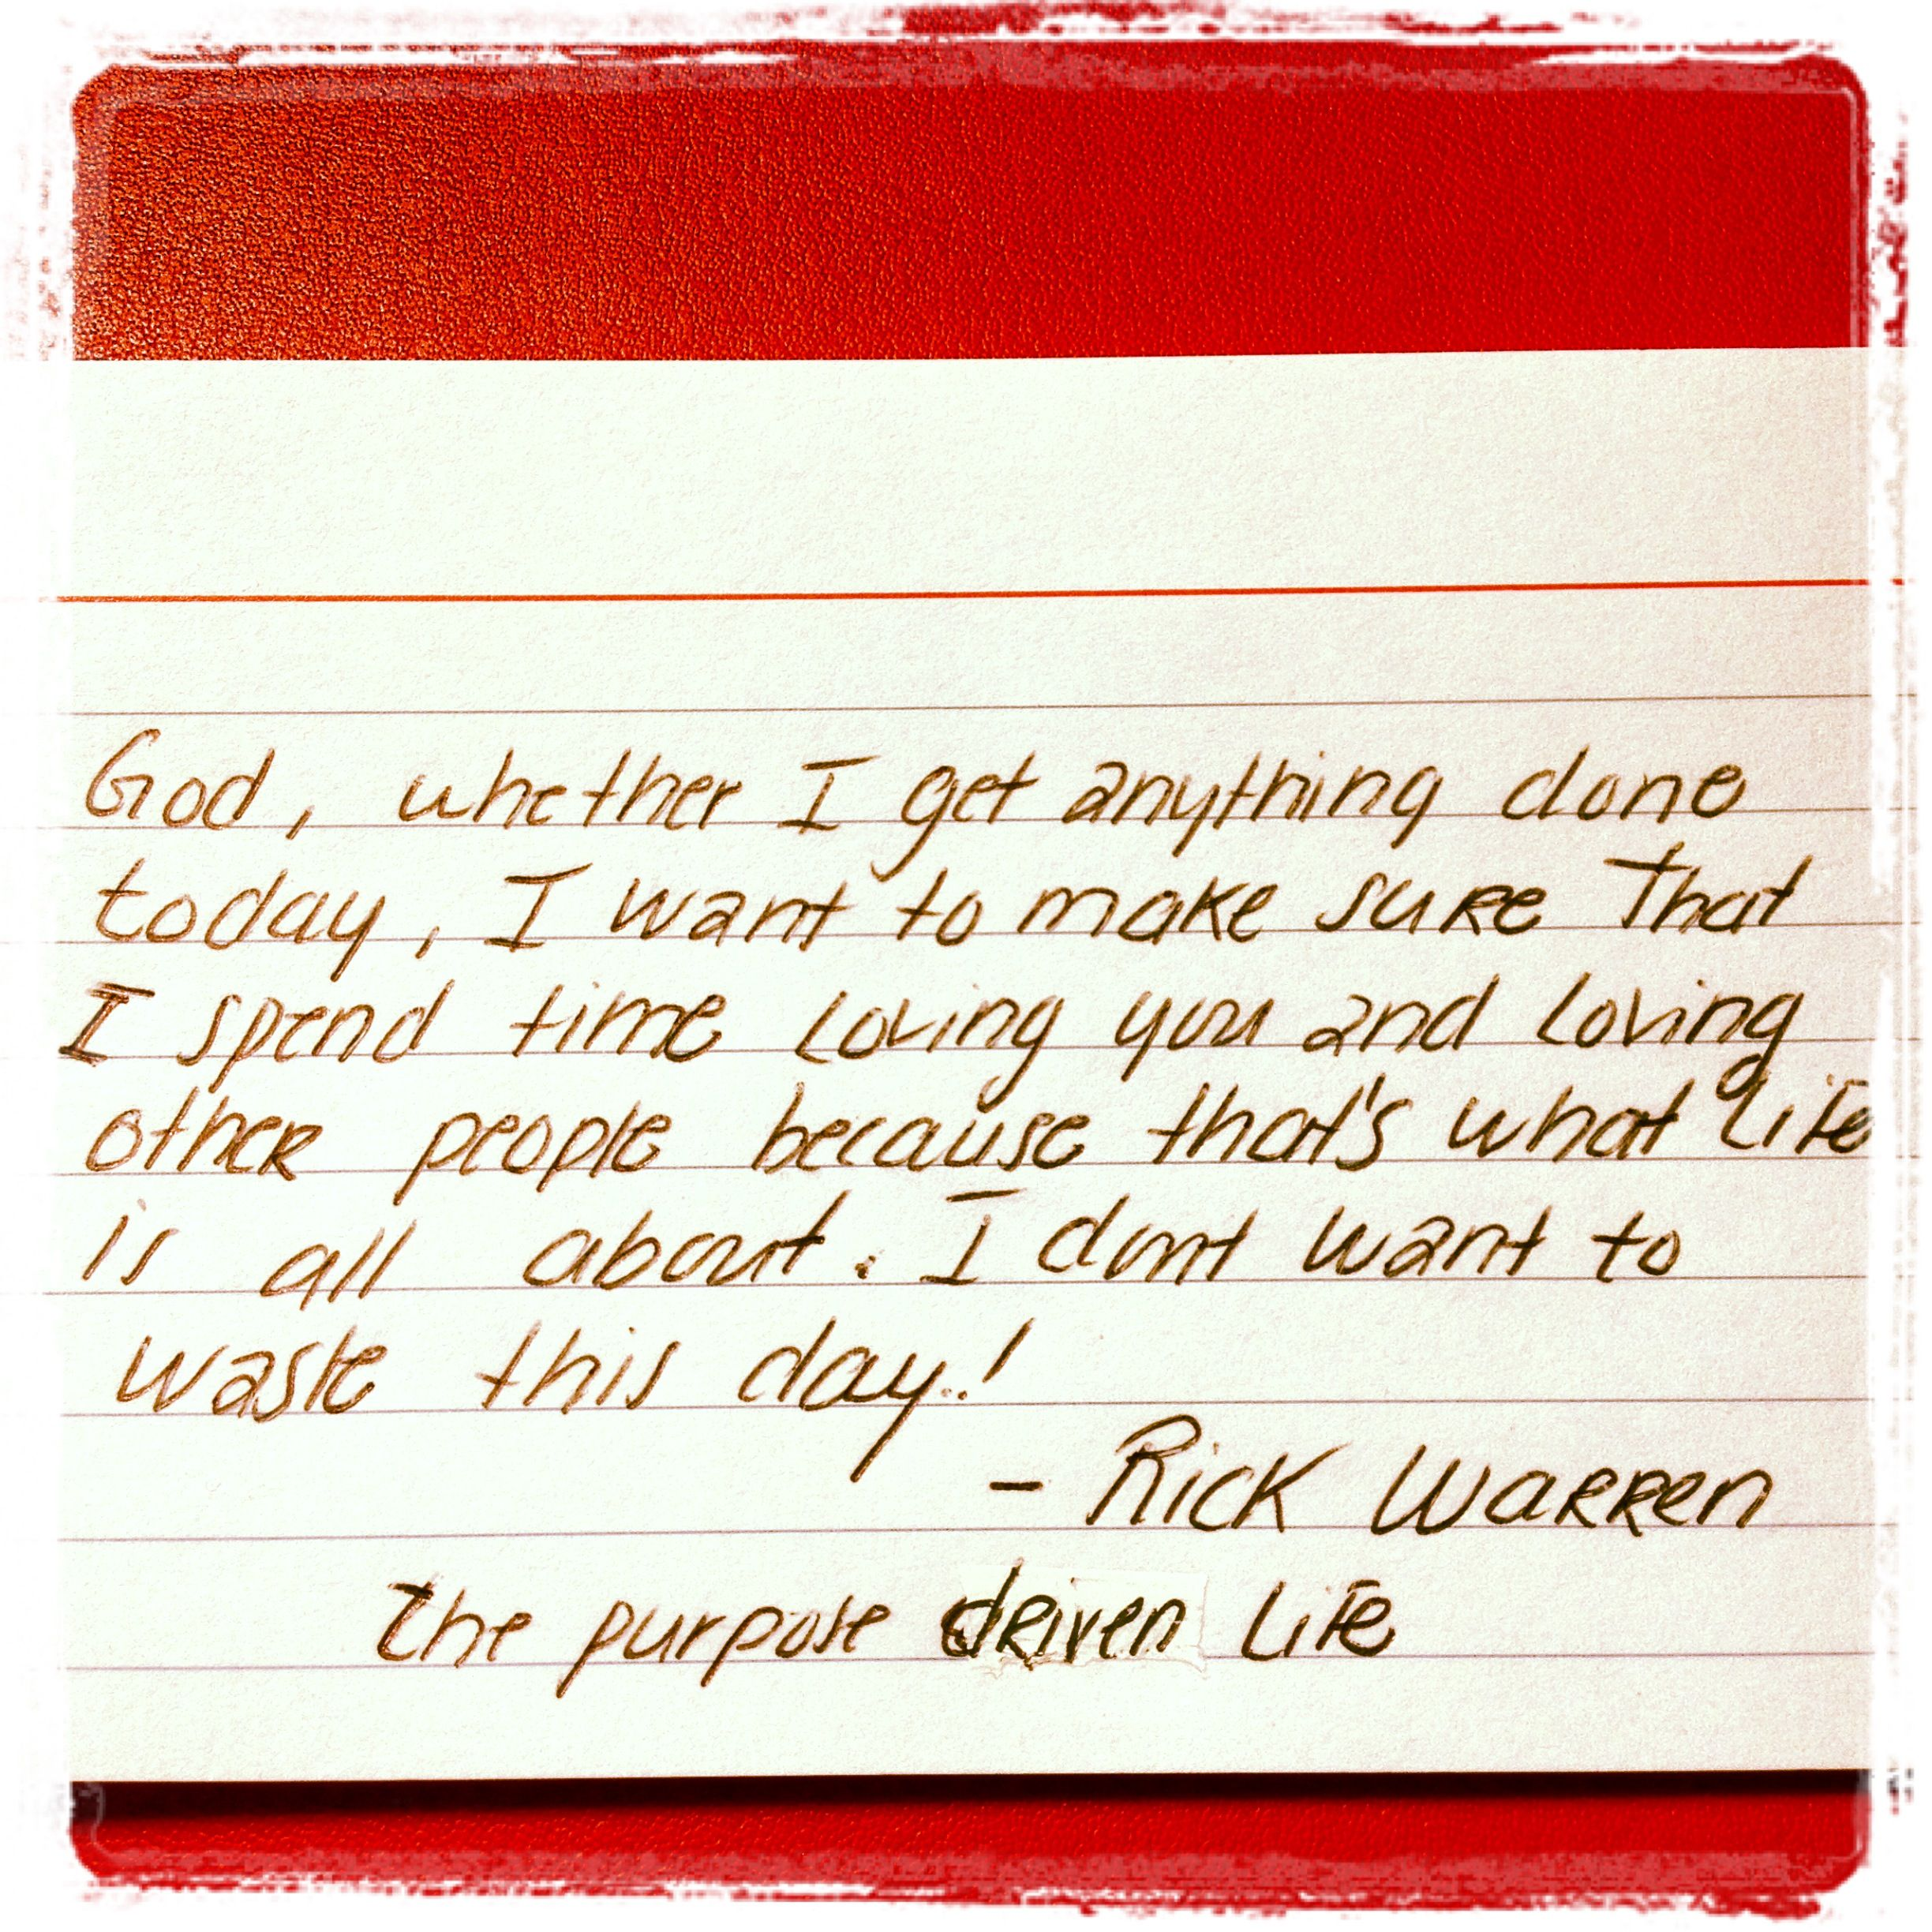 The Purpose Driven Life By Rick Warren An Amazing Book